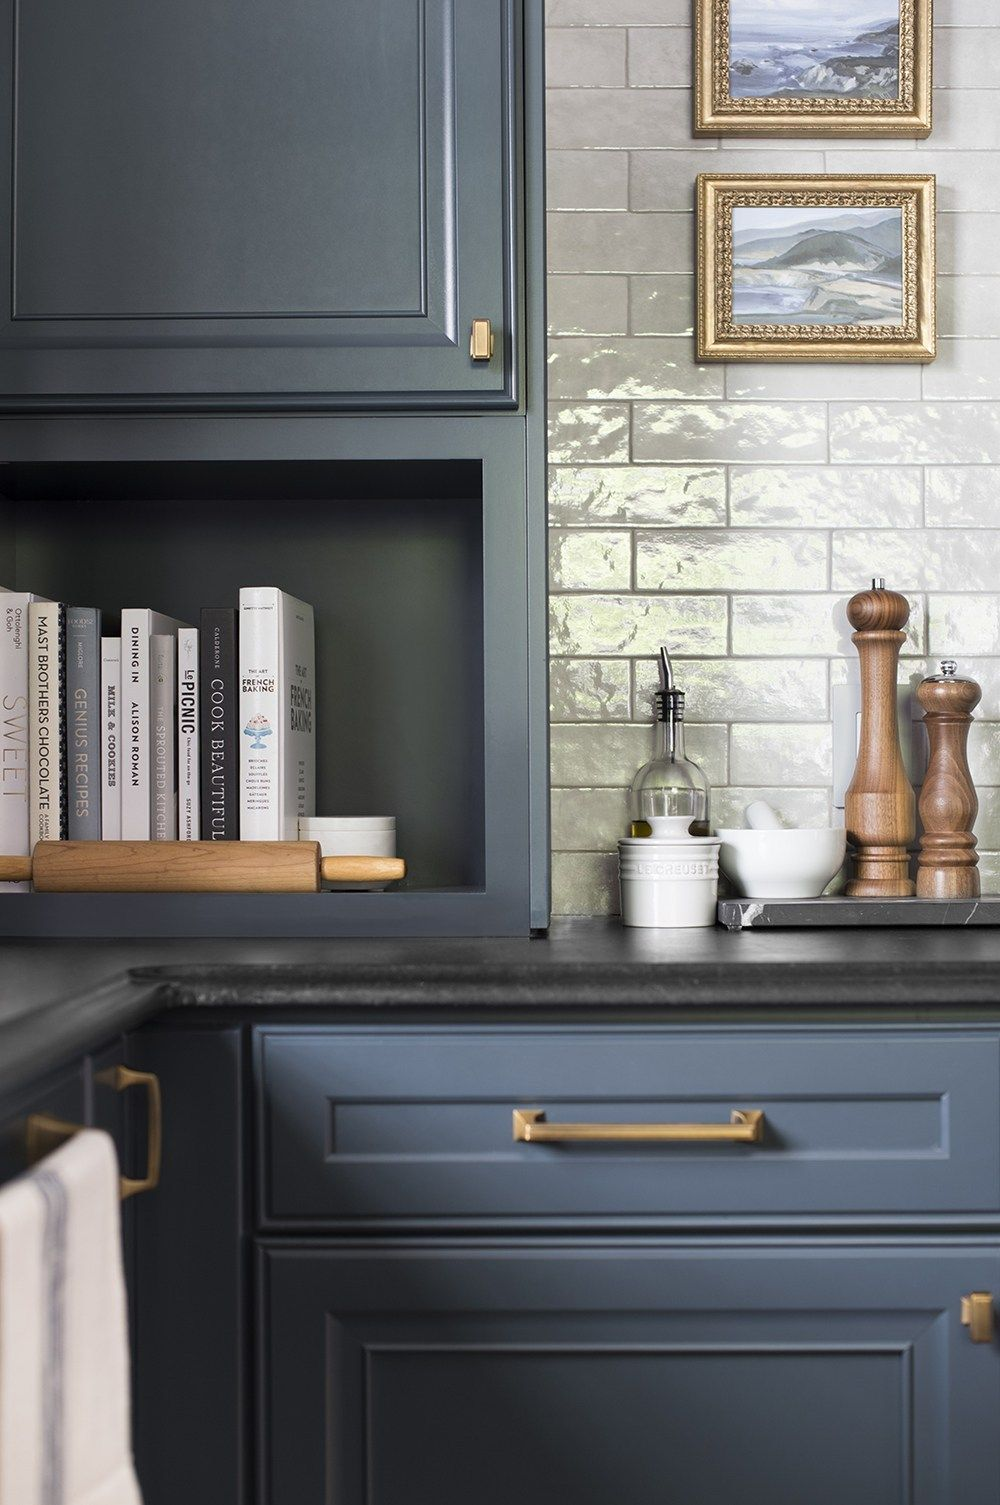 Tips For Designing A Functional Kitchen A Video Home Decor